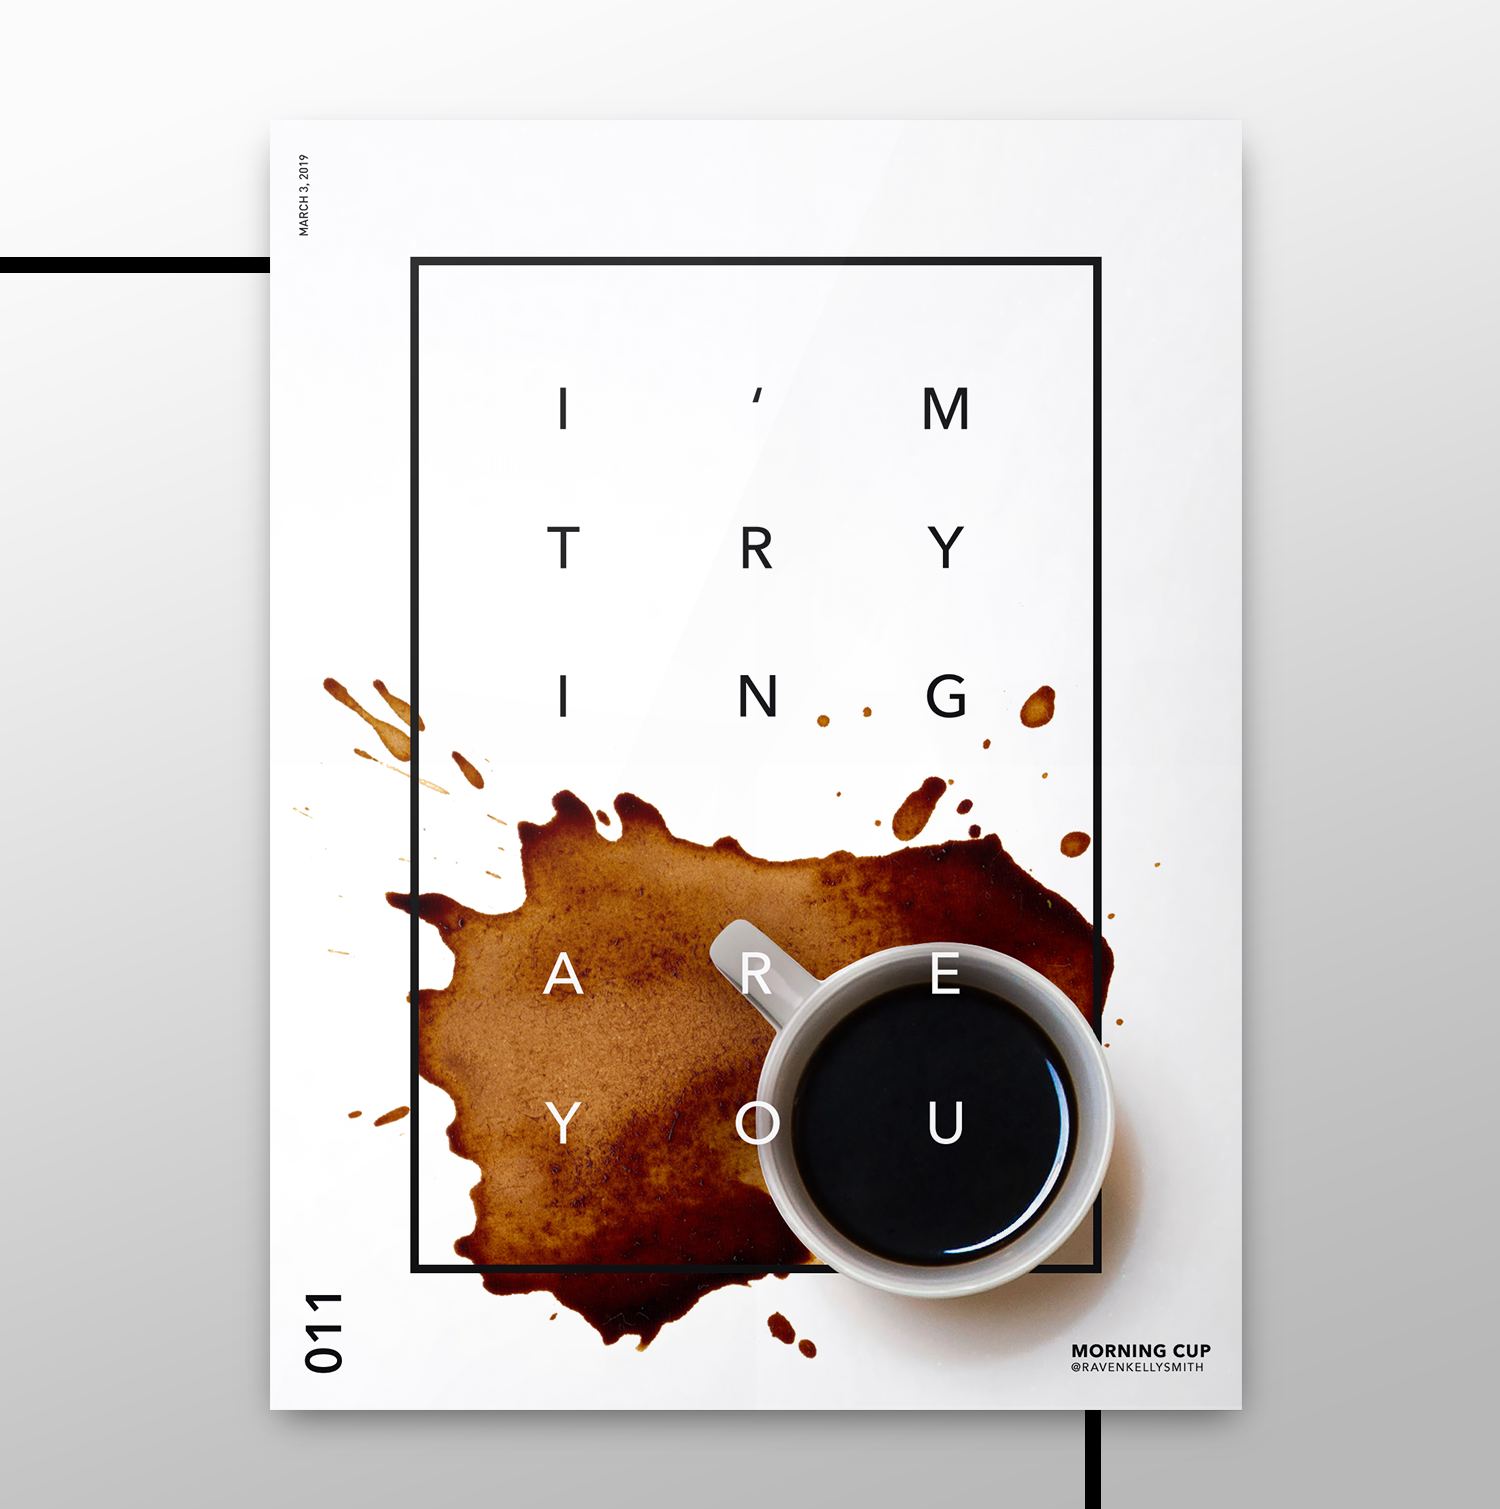 Poster-A-Day-11-Morning-Cup-full-04.png